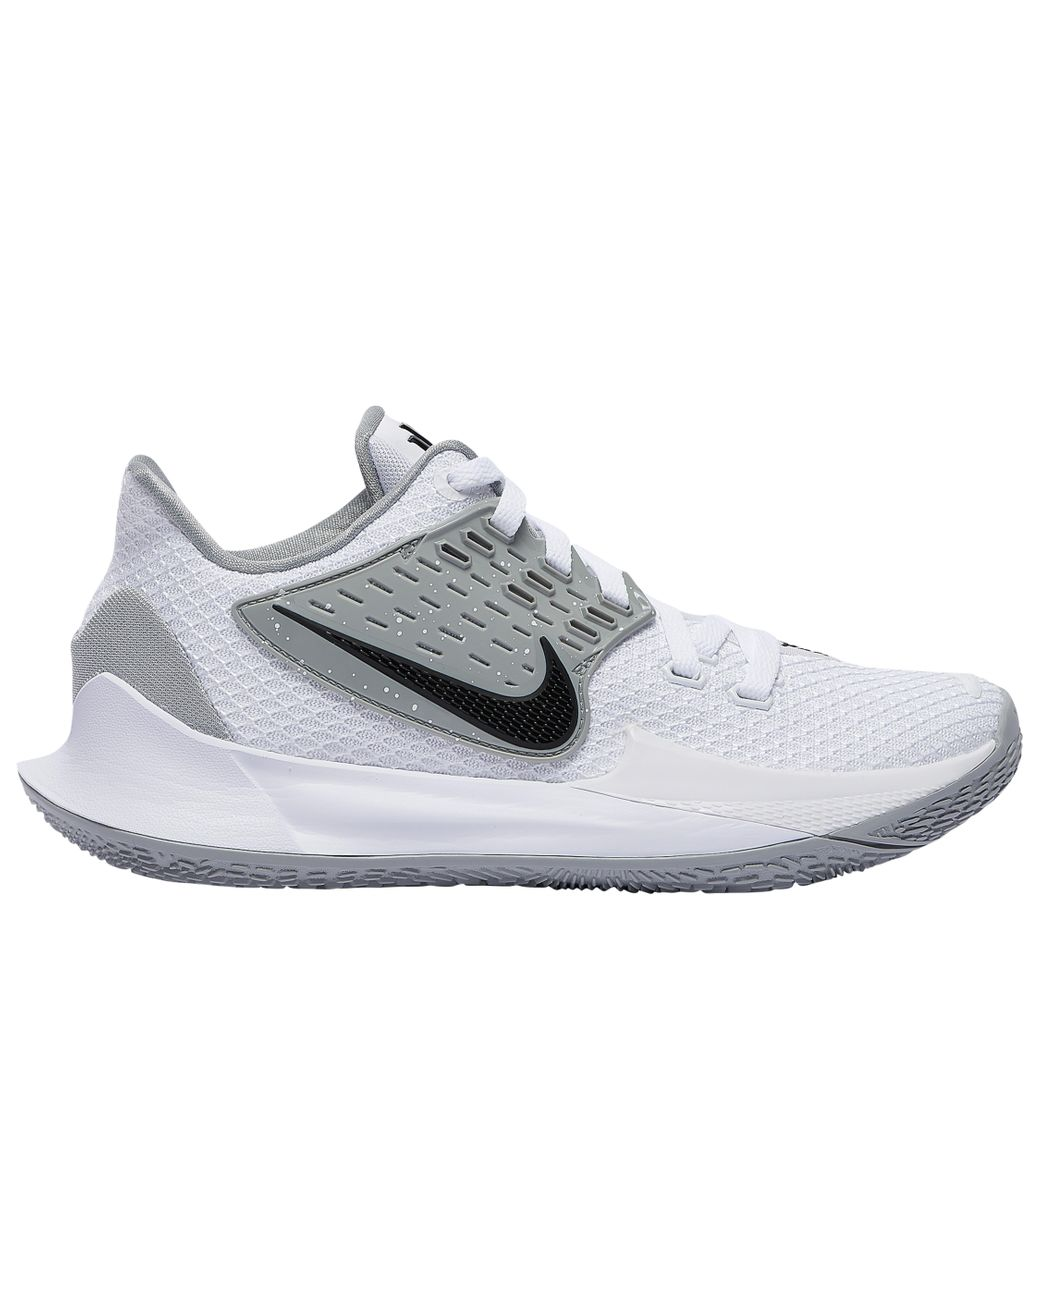 Nike Kyrie Low 2 in White/Black Silver